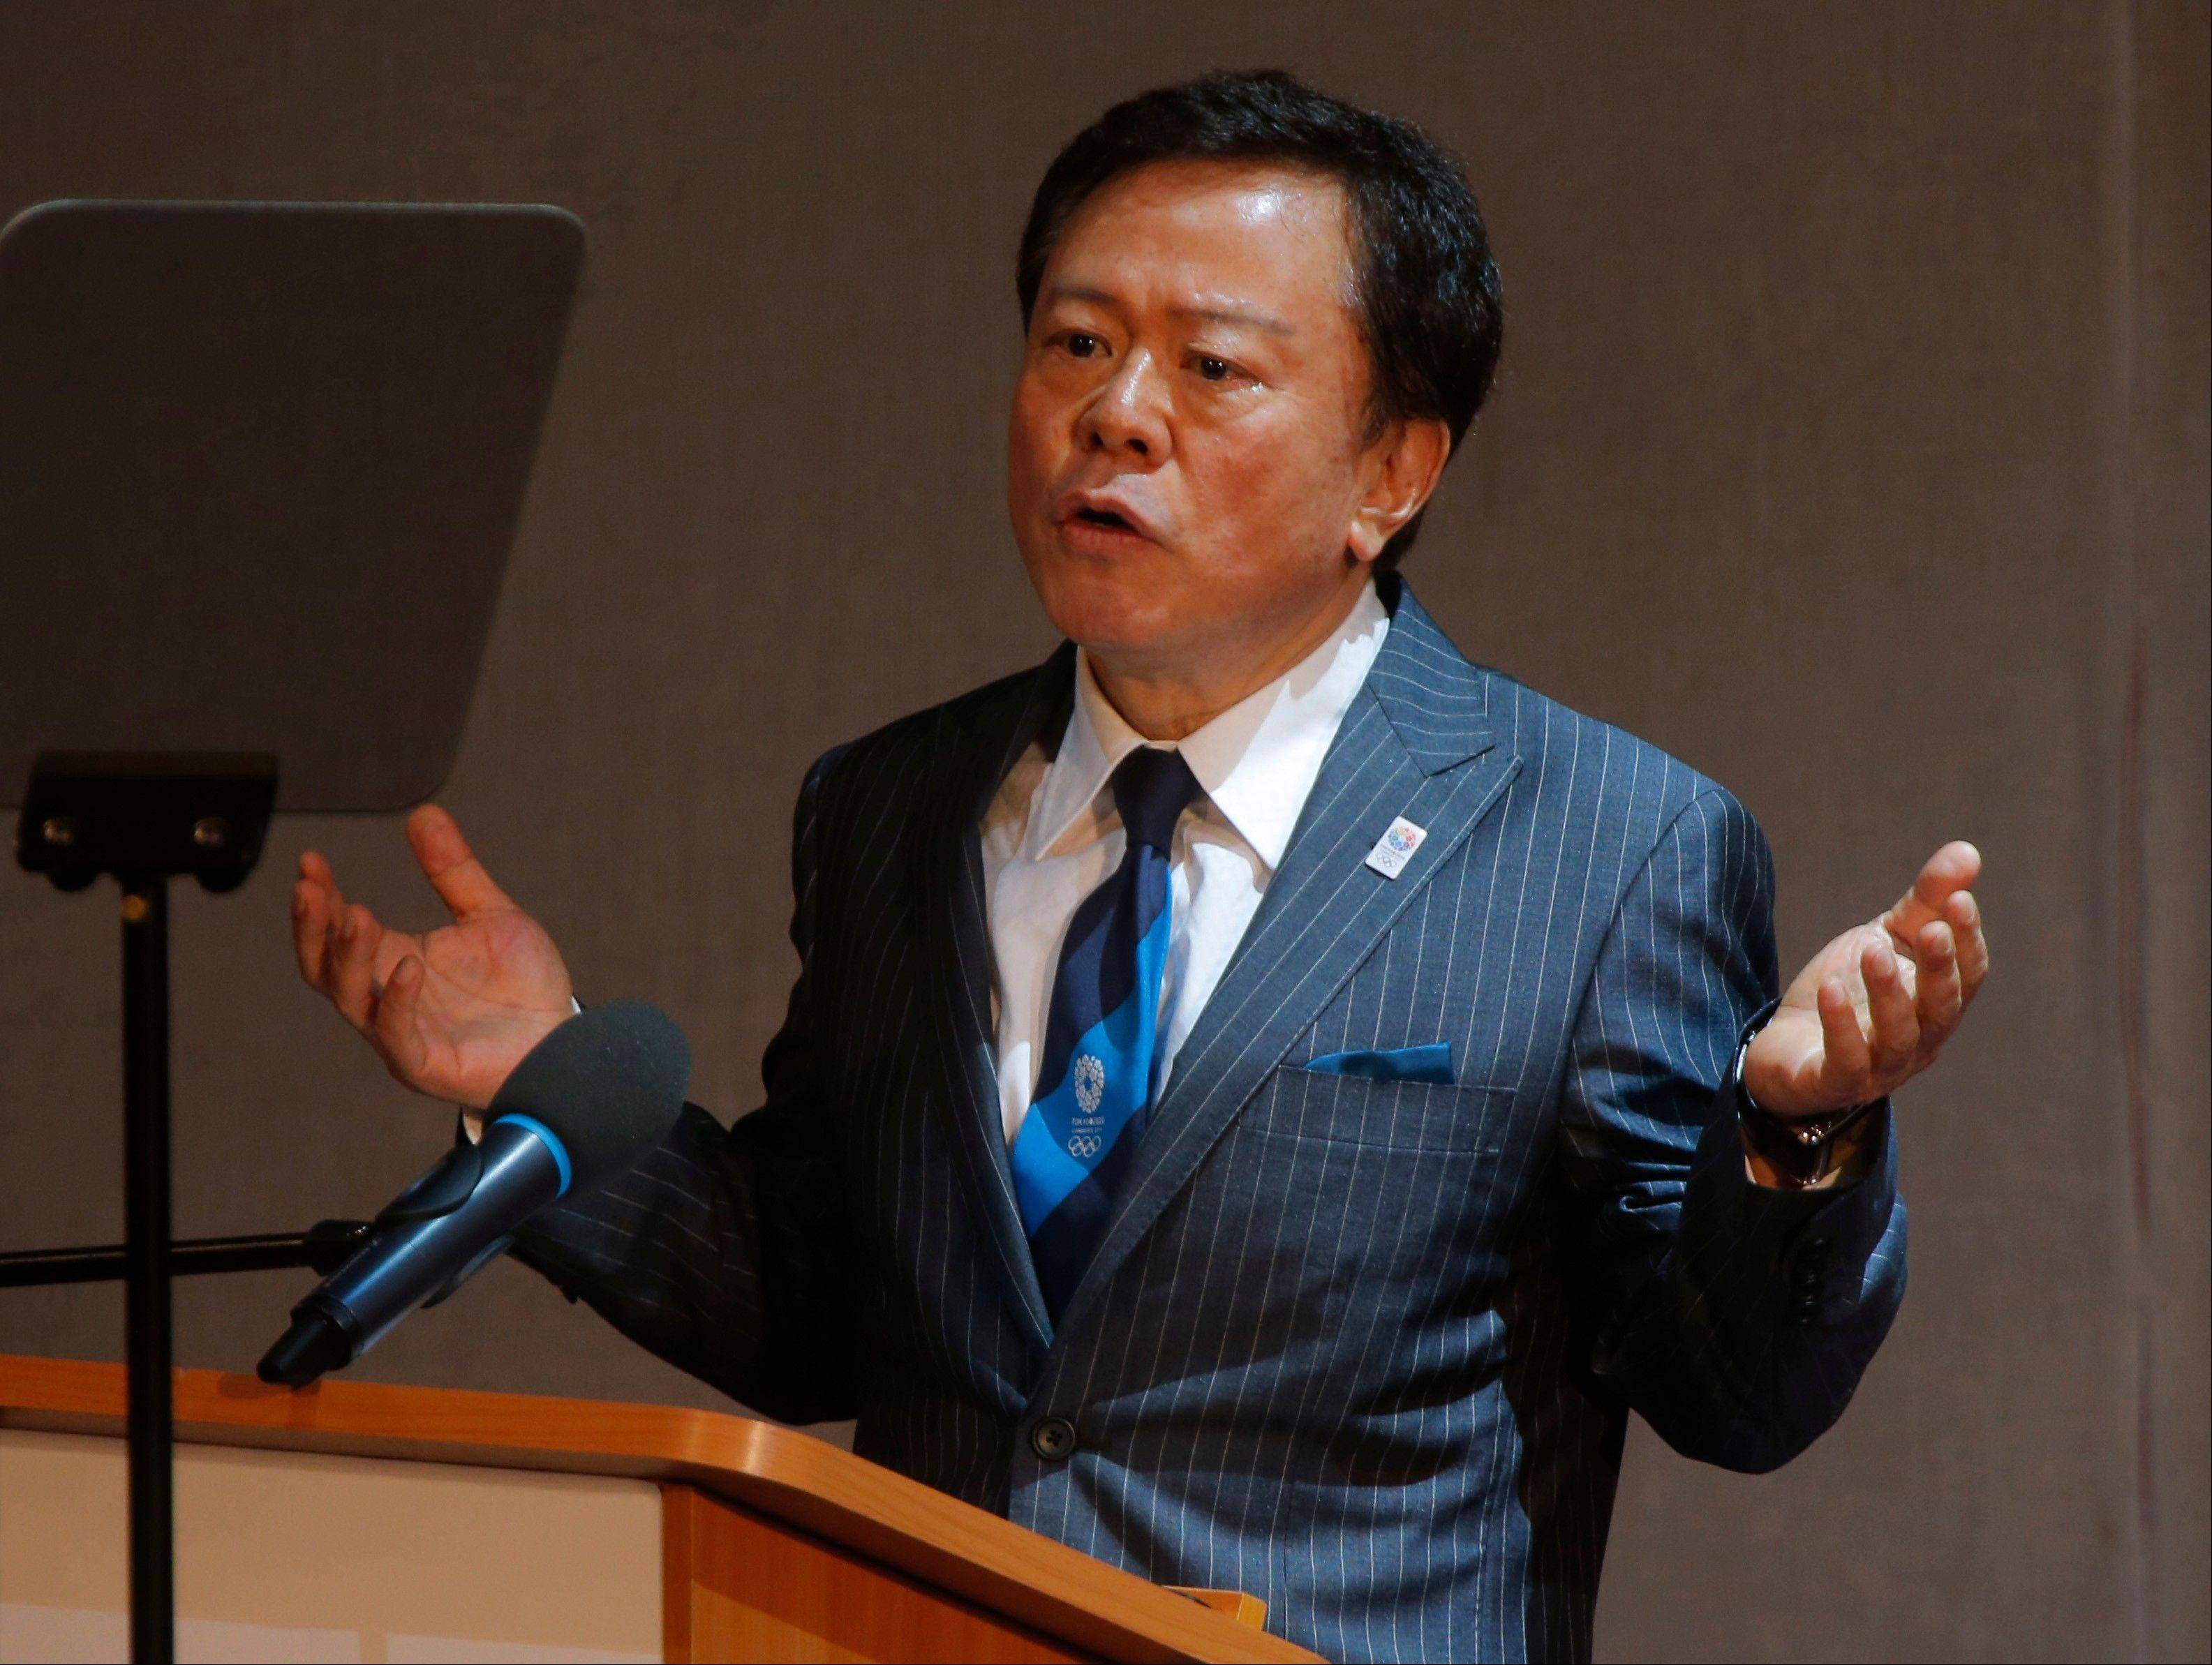 Tokyo Gov. Naoki Inose speaks during the presentation of Tokyo as a candidate city for the 2020 Olympics at the SportAccord International Convention in St. Petersburg, Russia. Inose rushed to 'clarify' uncomplimentary comments about the rival bid by the Turkish capital, Istanbul, to host the 2020 Olympic Summer Games.